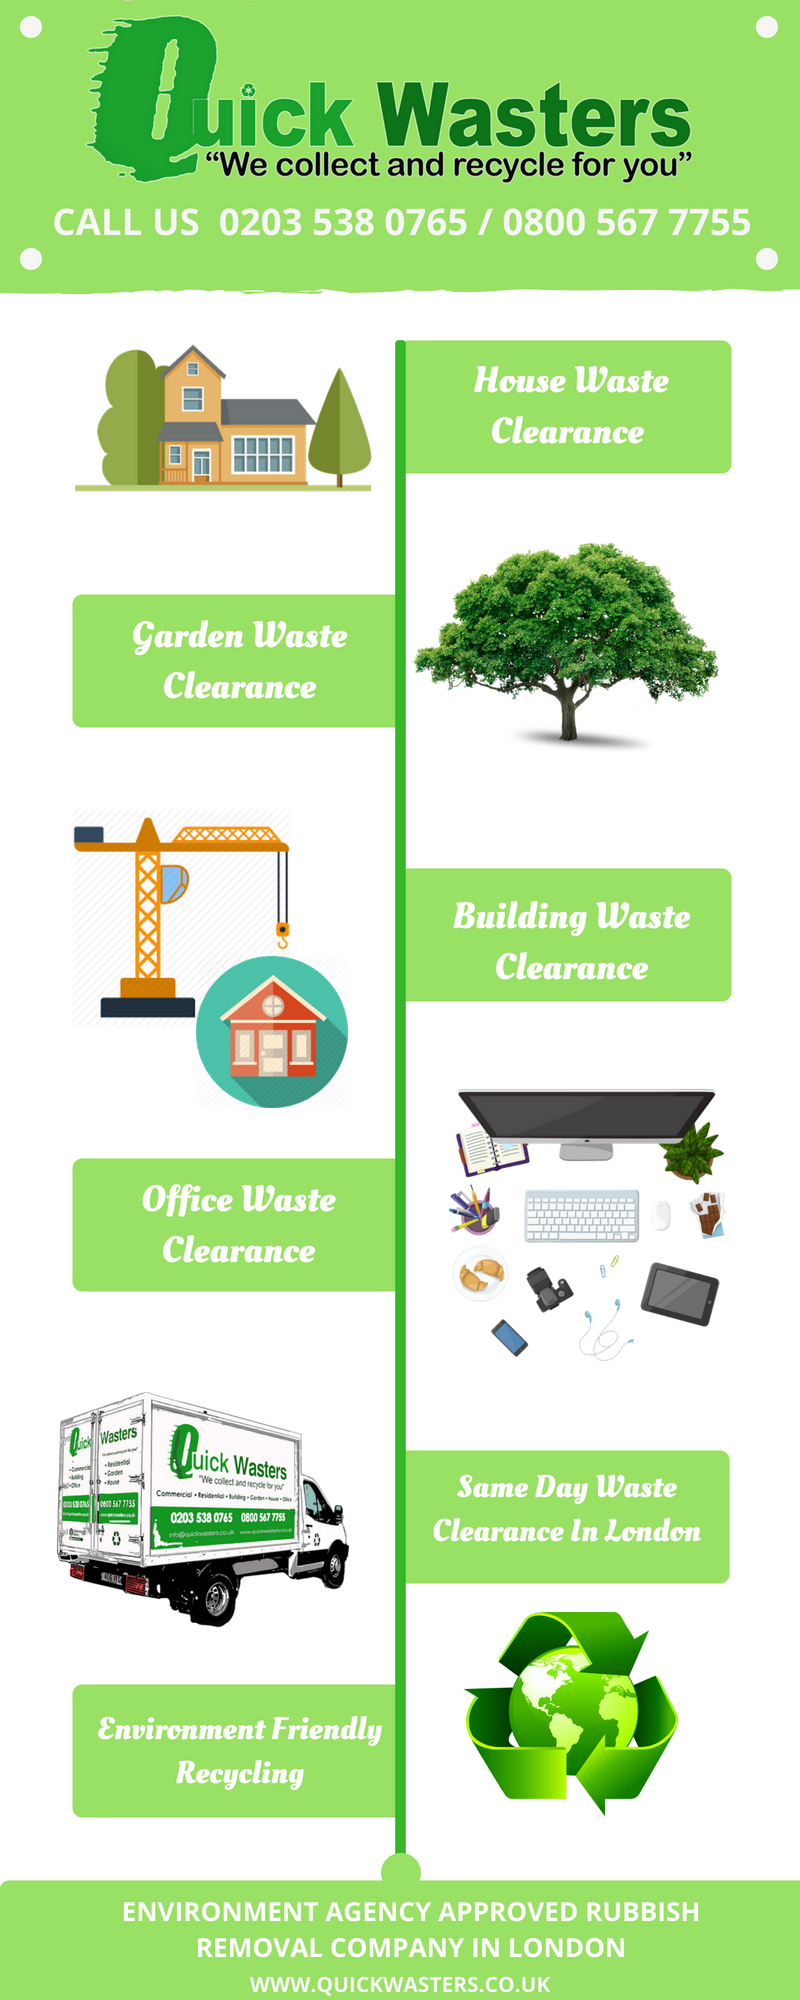 Things To Consider Before Choosing a Rubbish Removal